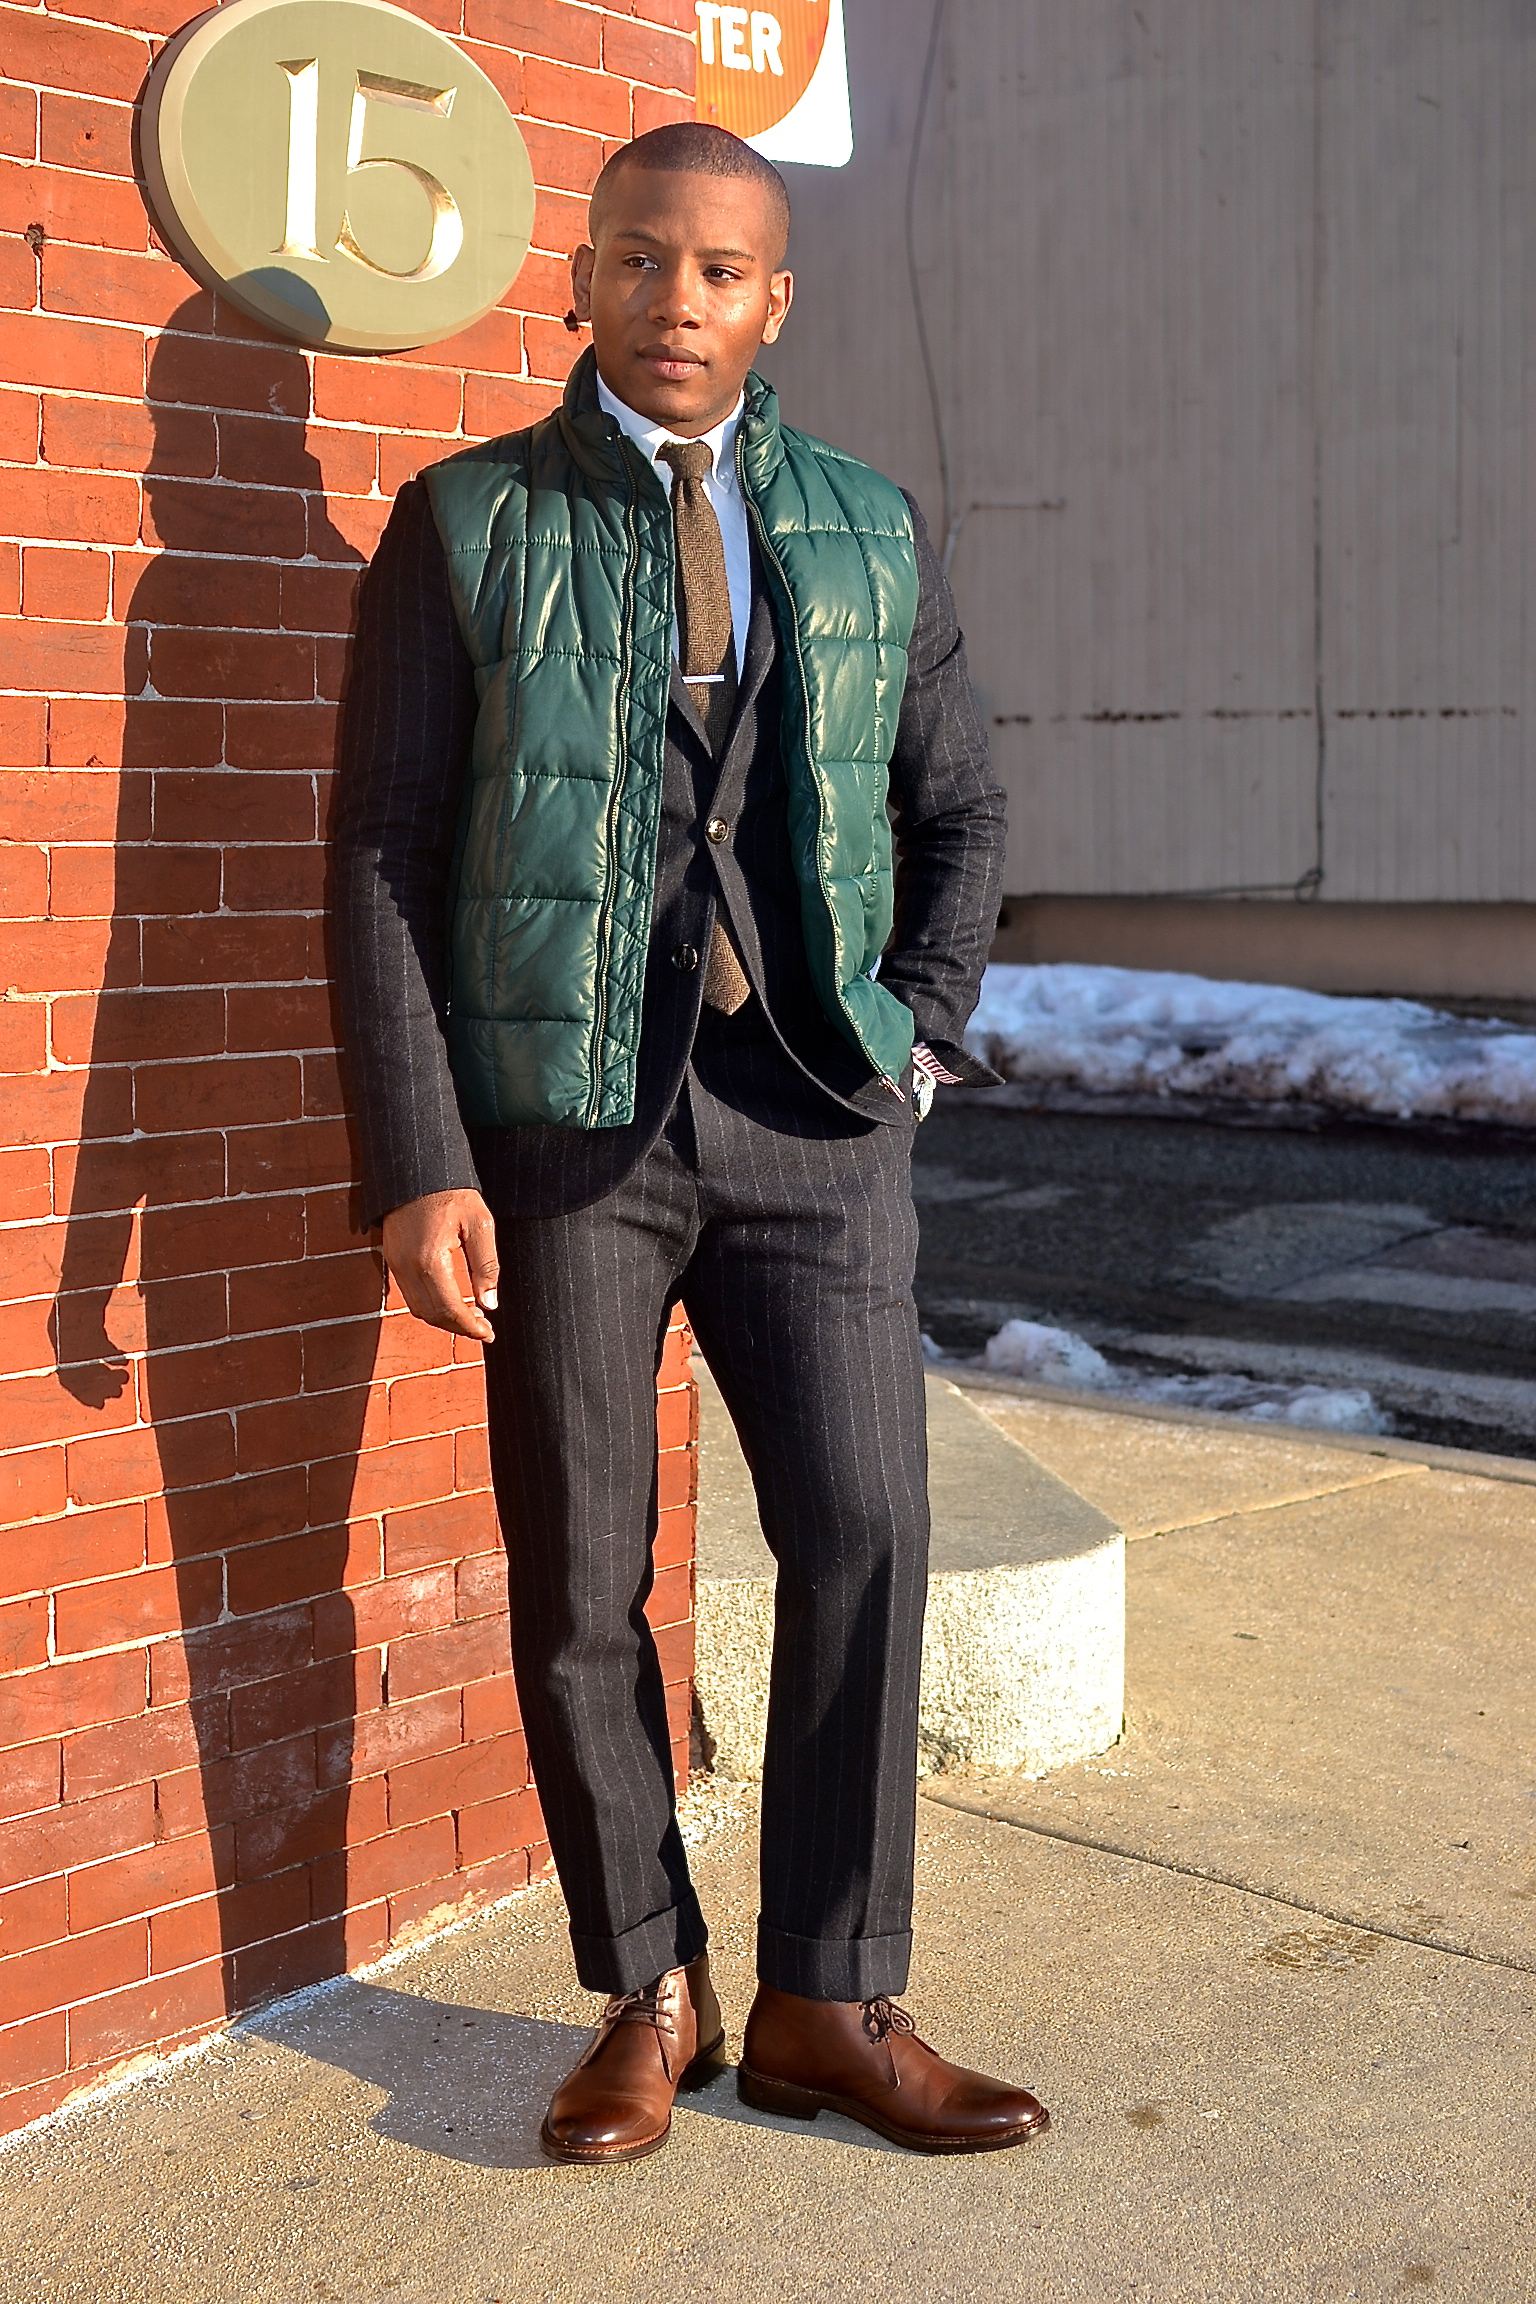 Chukka Boots Amp Winter Suits 3 Ways Page 3 Men S Style